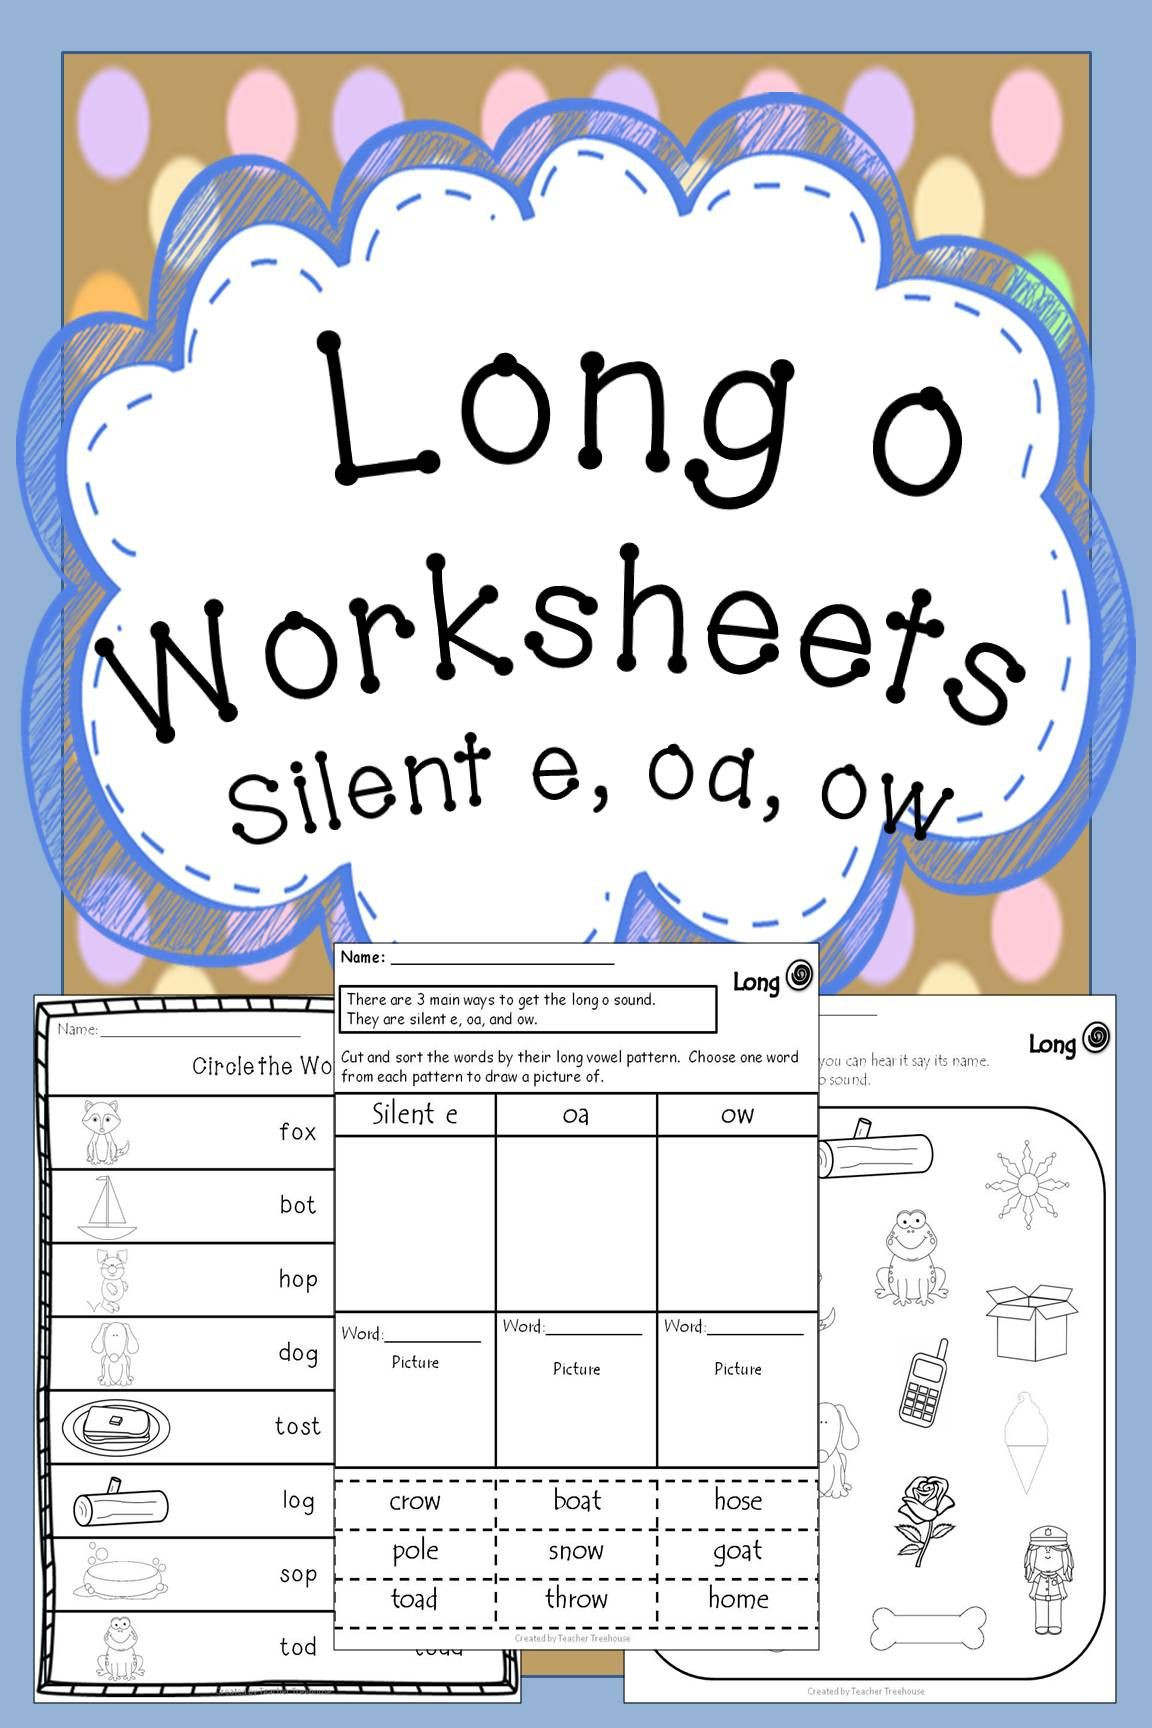 Long O Worksheets 2nd Grade Long O Worksheets Long O Oa Silent E Ow Vowel Teams